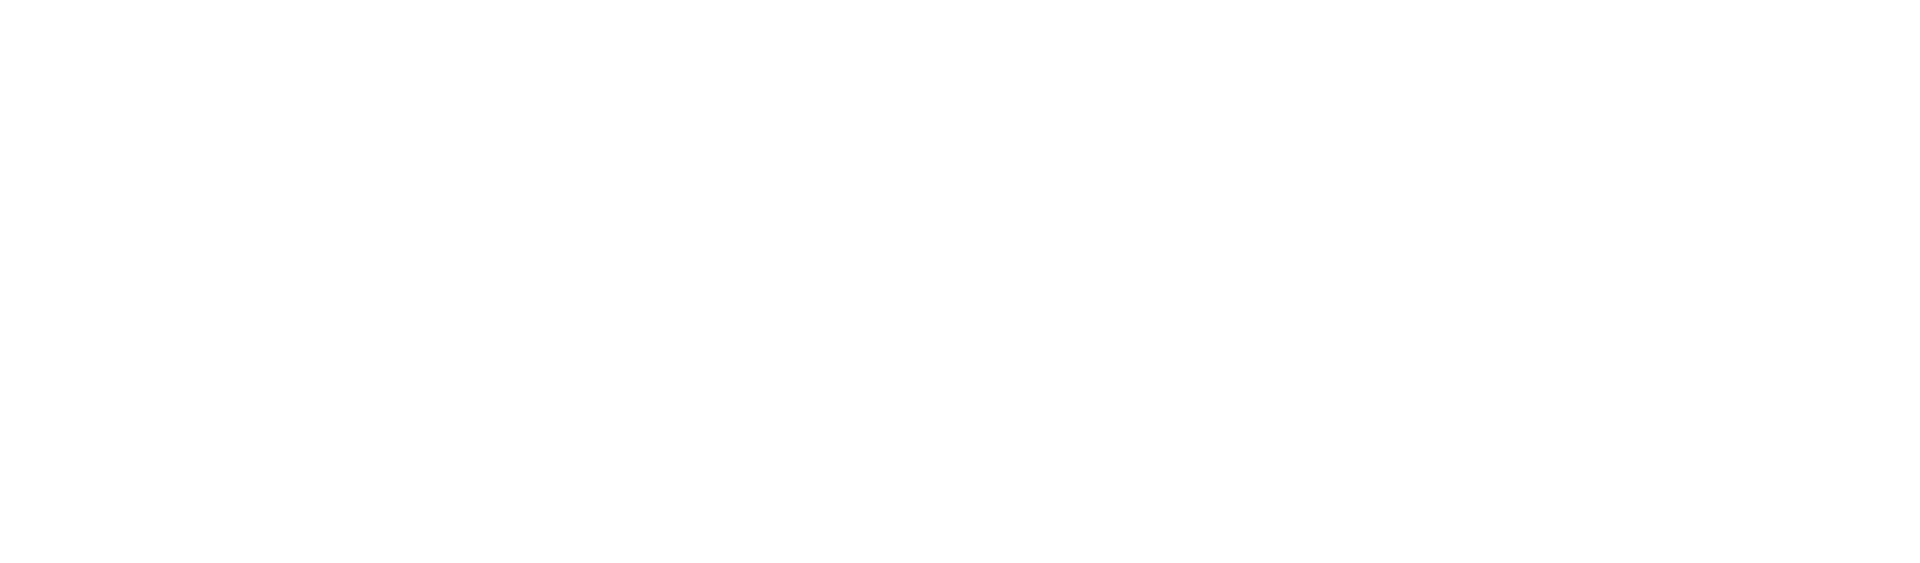 Empire State Indivisible logo